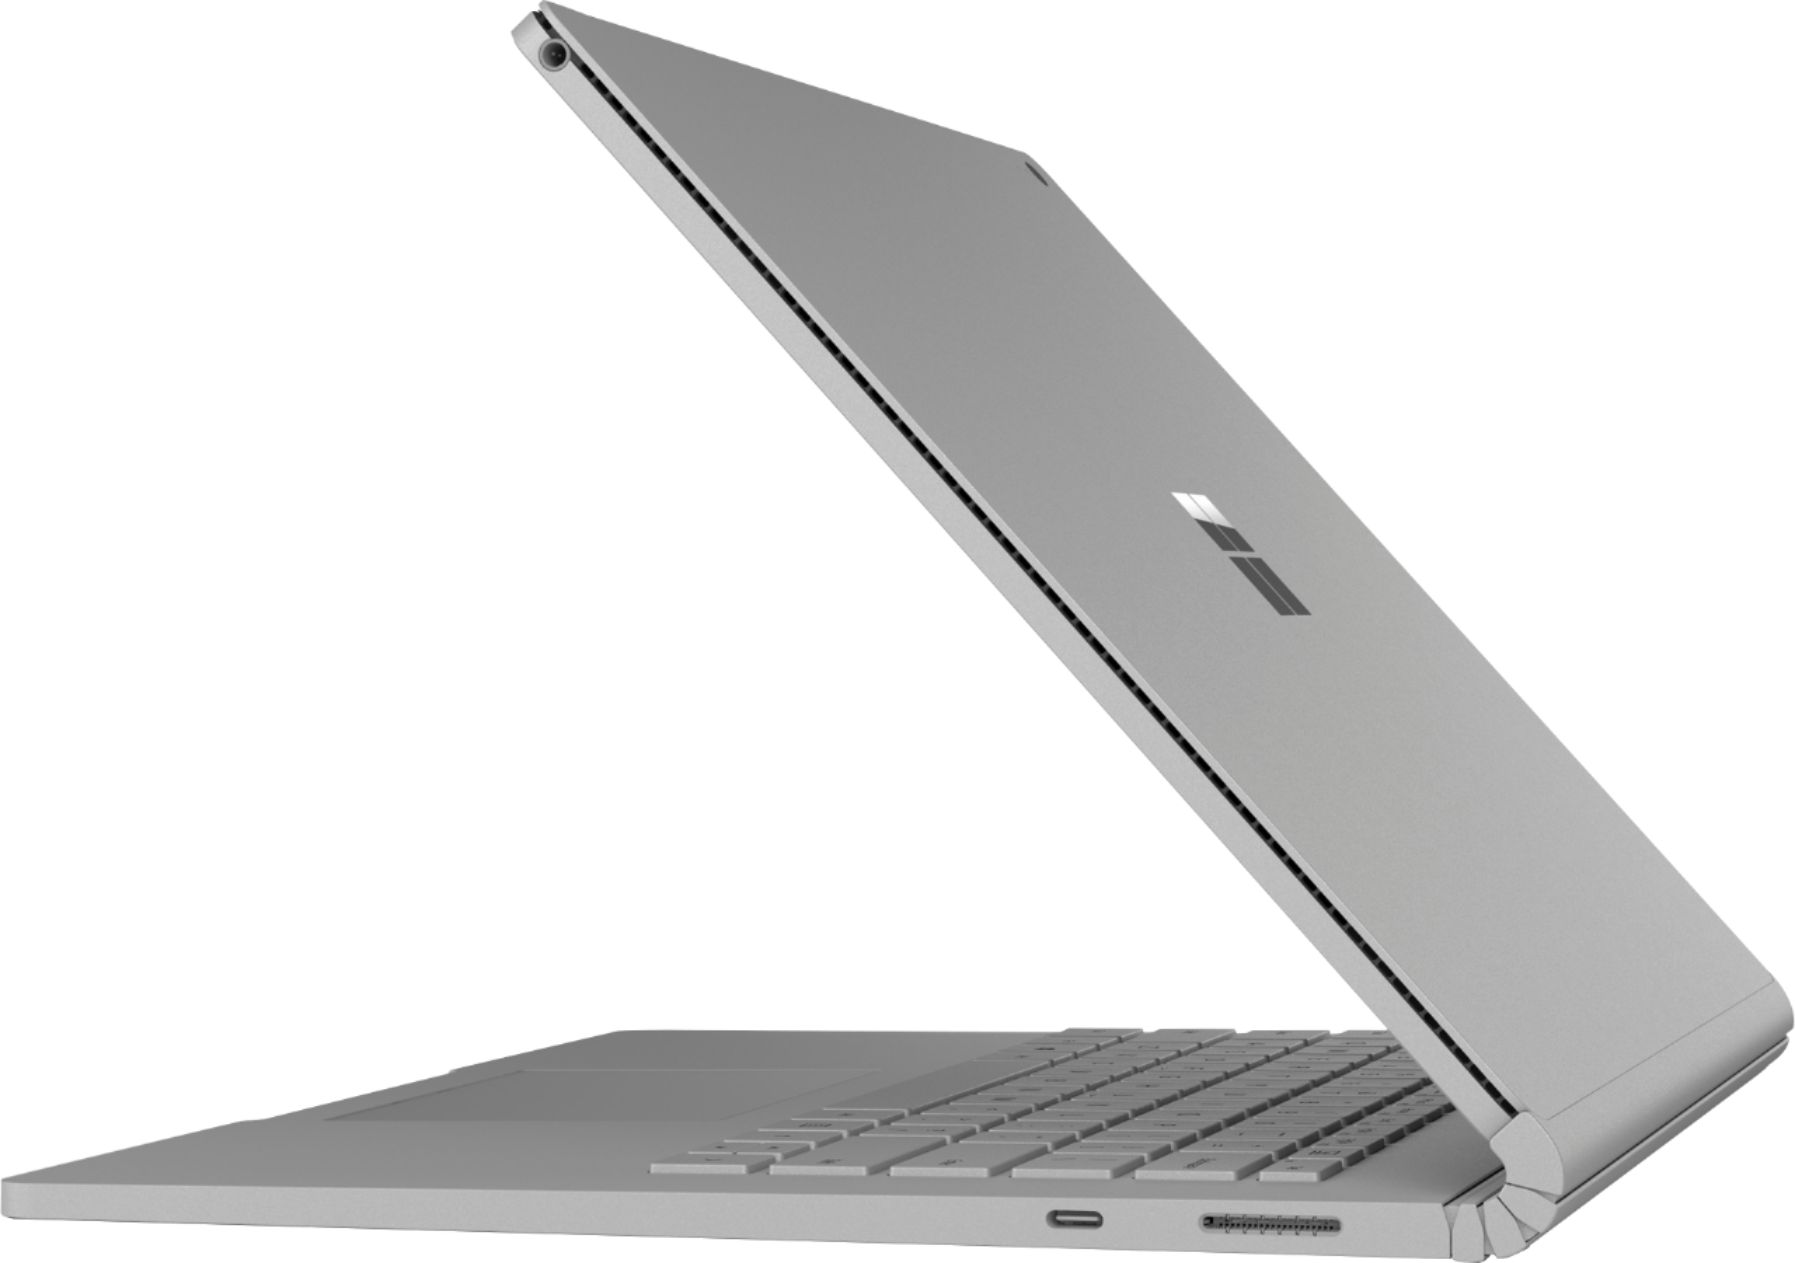 """Left Zoom. Microsoft - Geek Squad Certified Refurbished Surface Book 2 - 13.5"""" Touch-Screen Laptop - Intel Core i7 - 16GB Memory - 512GB SSD - Silver."""